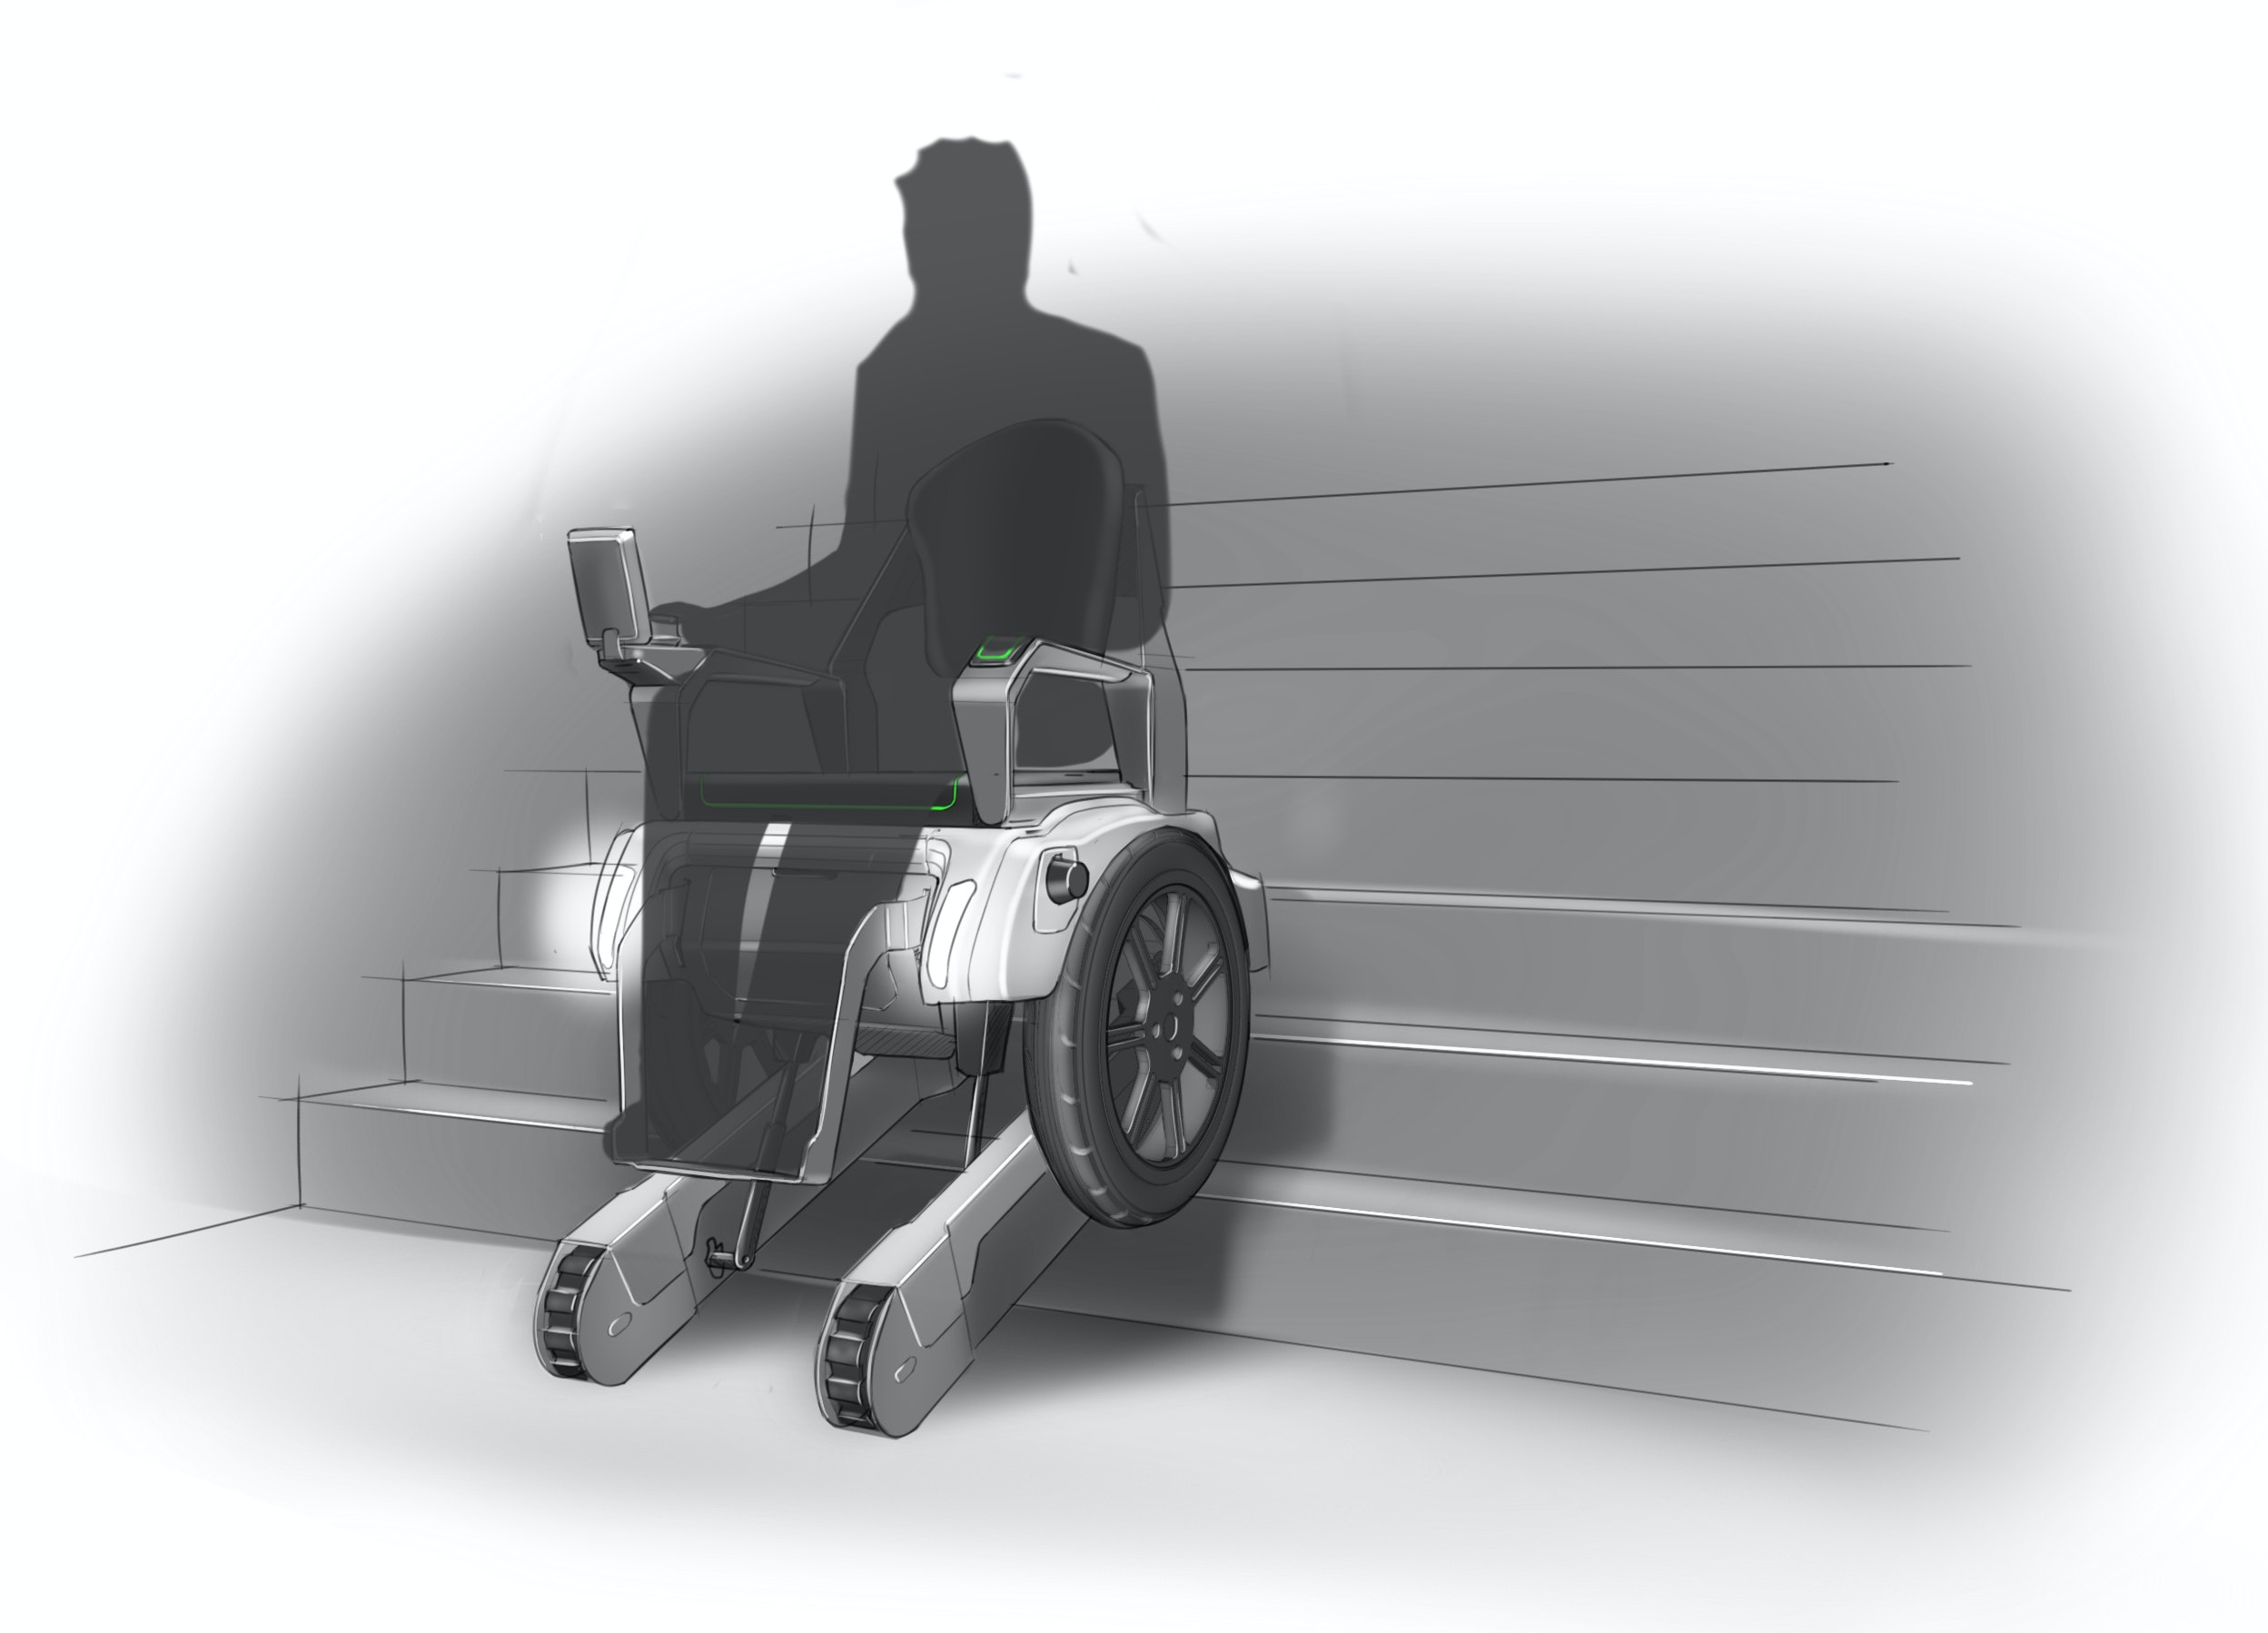 Scalevo - Electric wheelchair that can climb stairs